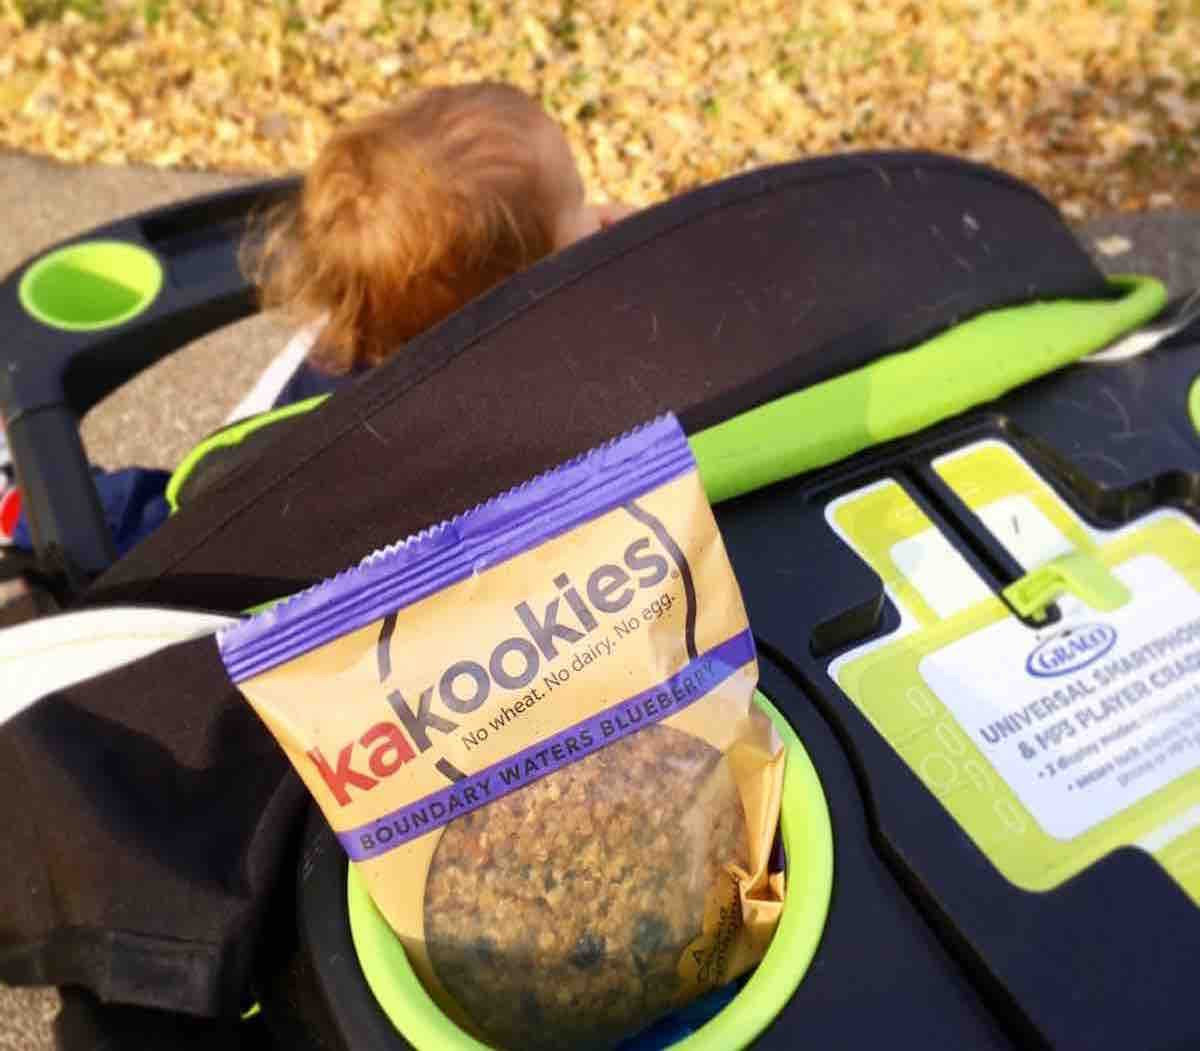 Kakookies Wholesome Snacks for Active and Busy Moms and Families